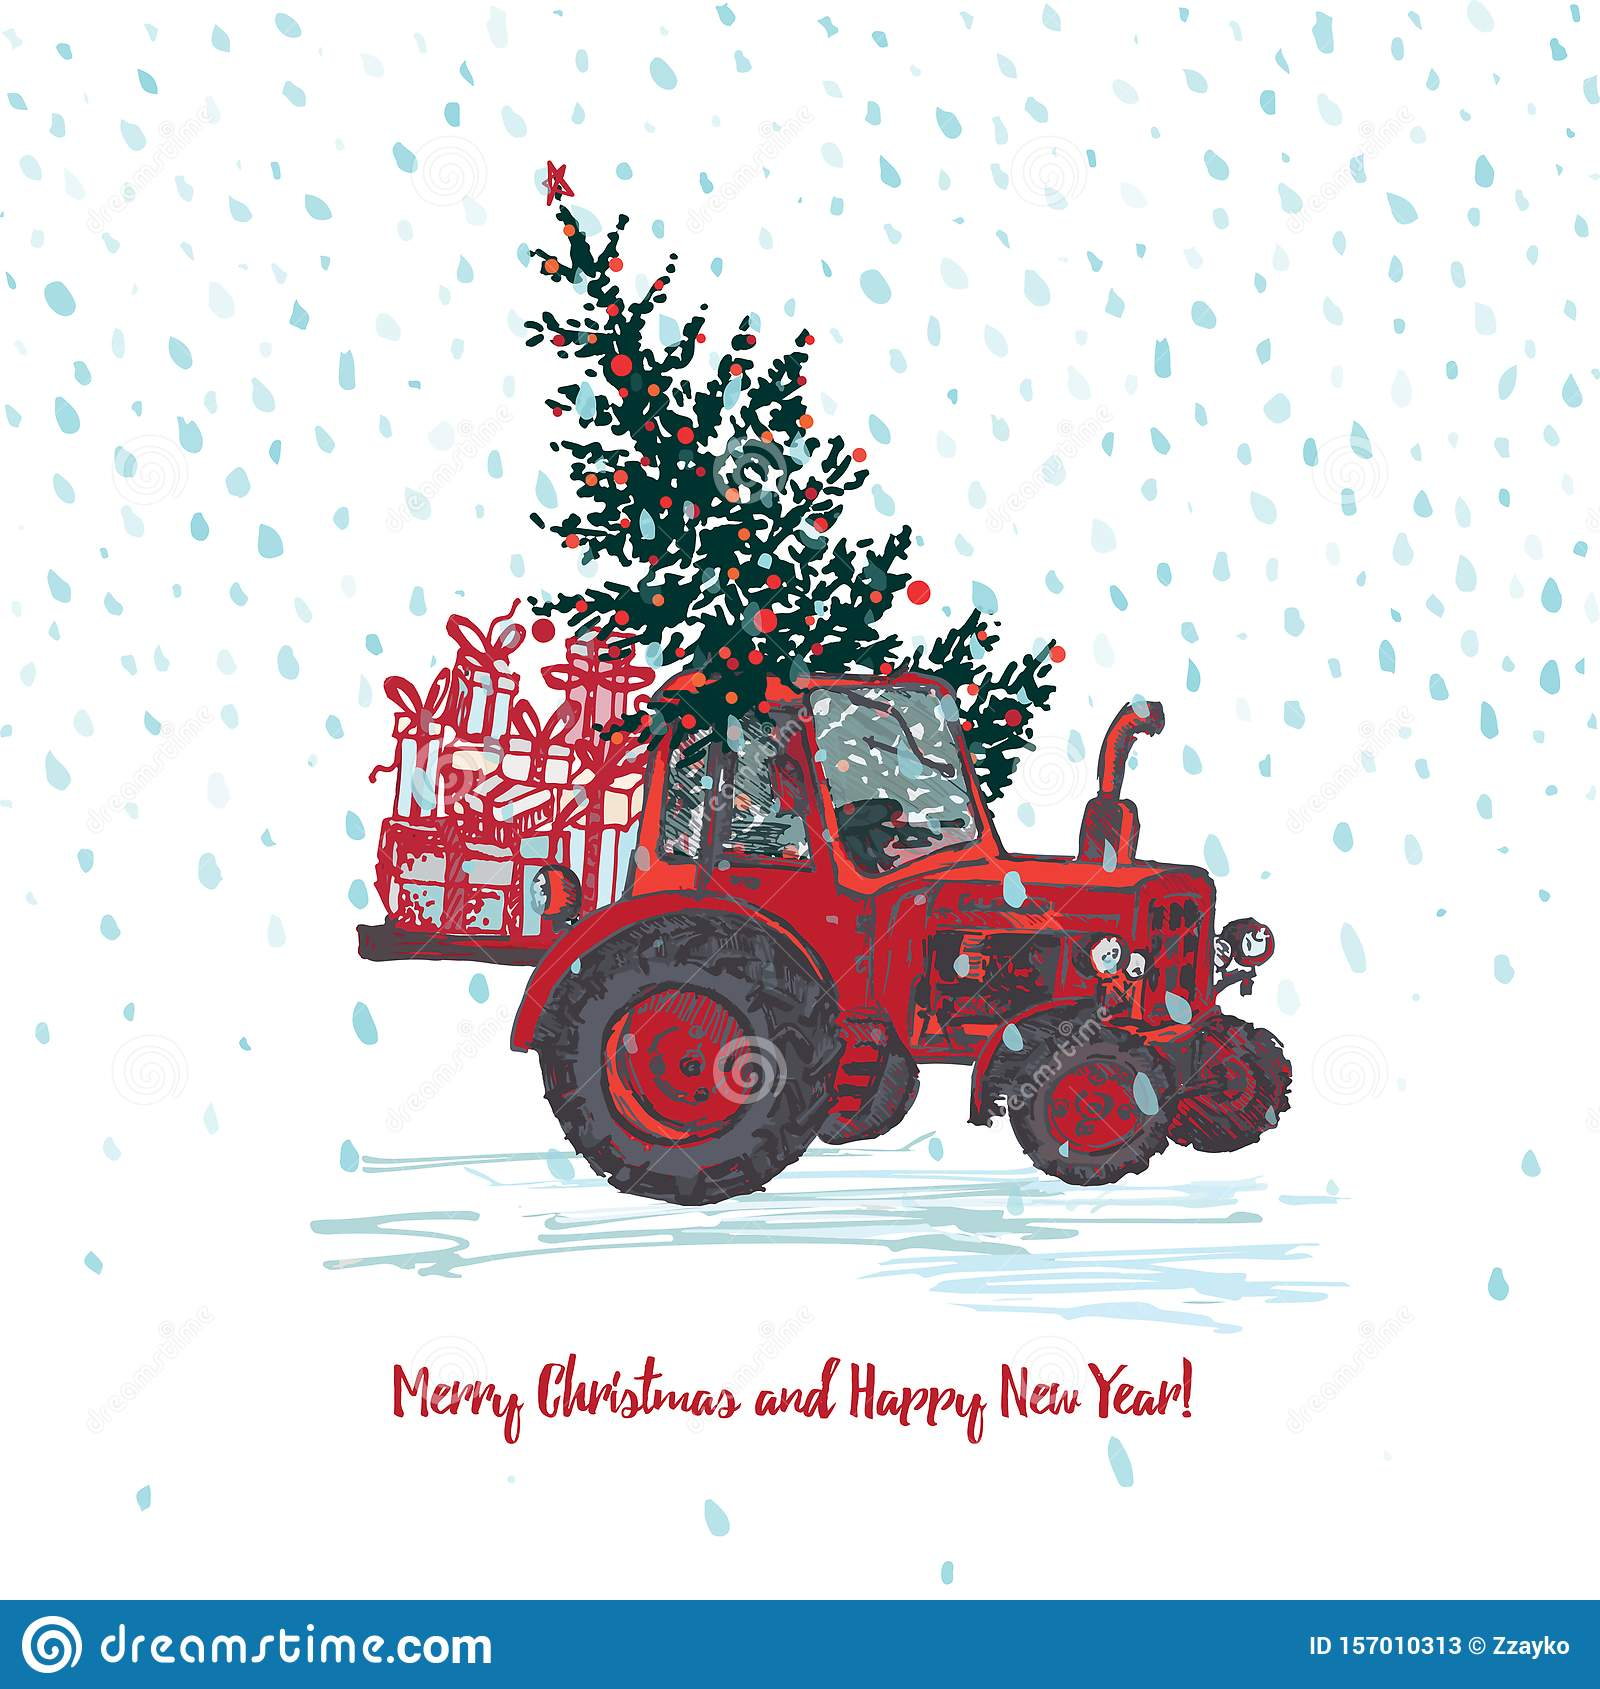 Festive New Year and Merry Christmas card. Red tractor with fir tree decorated red balls and holiday gifts White snowy